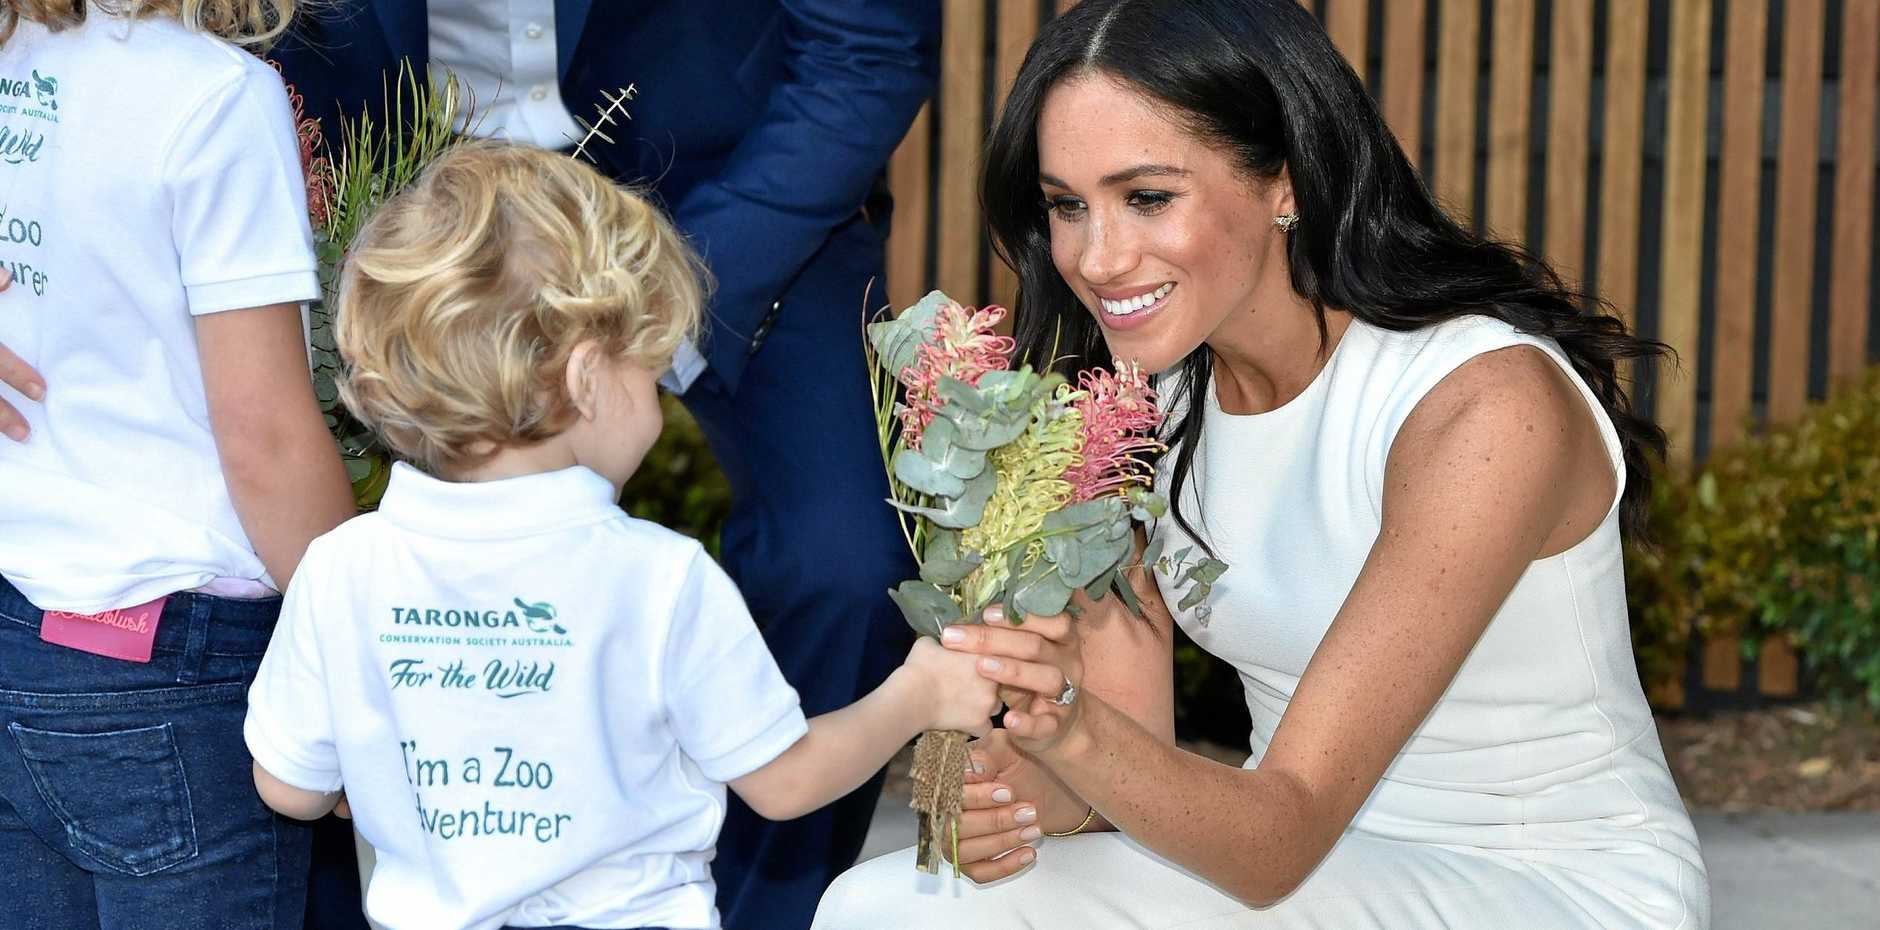 ROYAL WHITE: Meghan, the Duchess of Sussex, wears a dress designed by former Rockhampton woman Karen Gee.